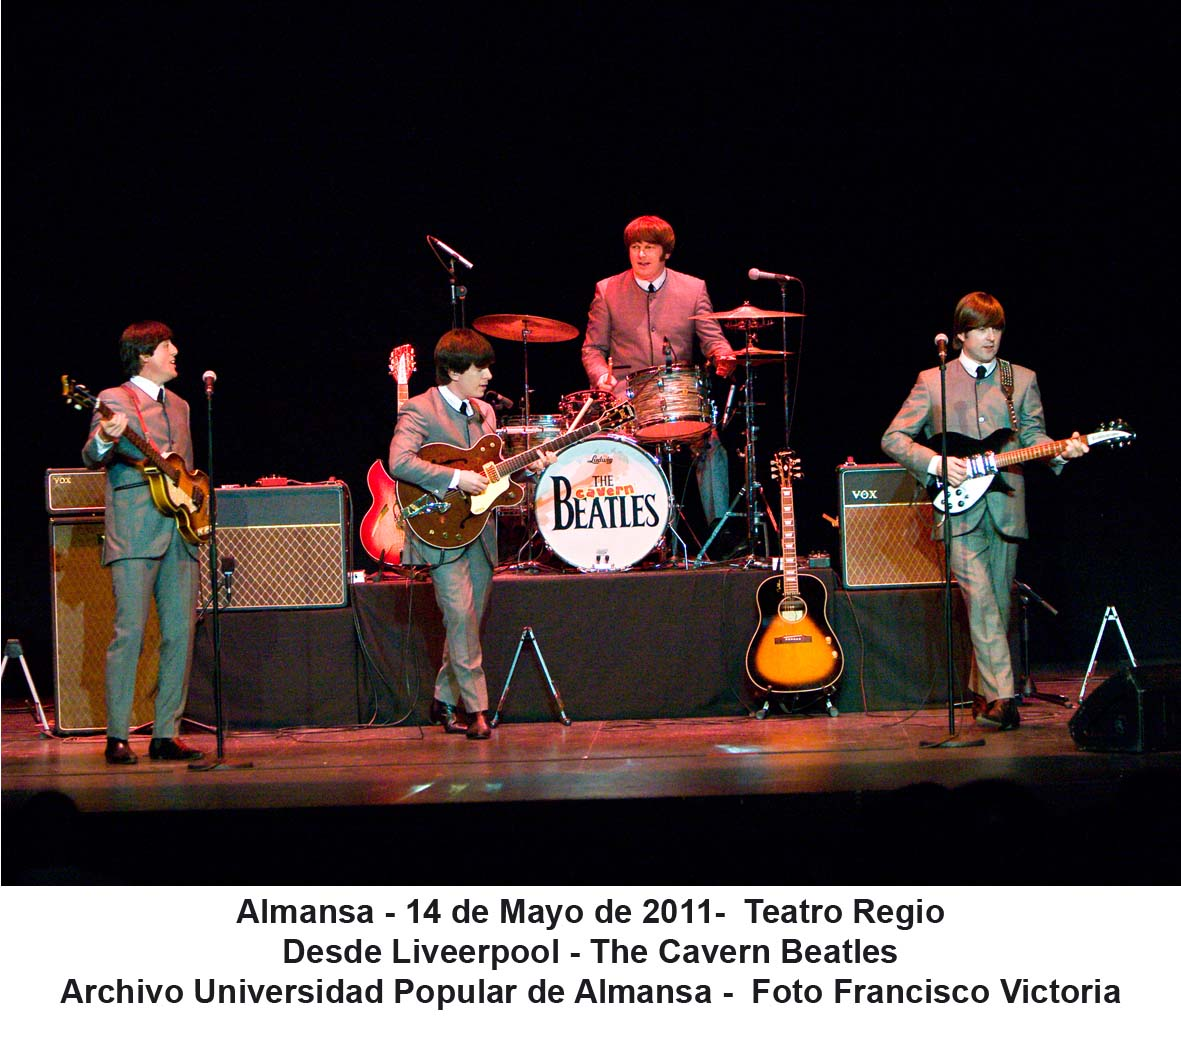 110514 THE CAVERN BEATLES 01